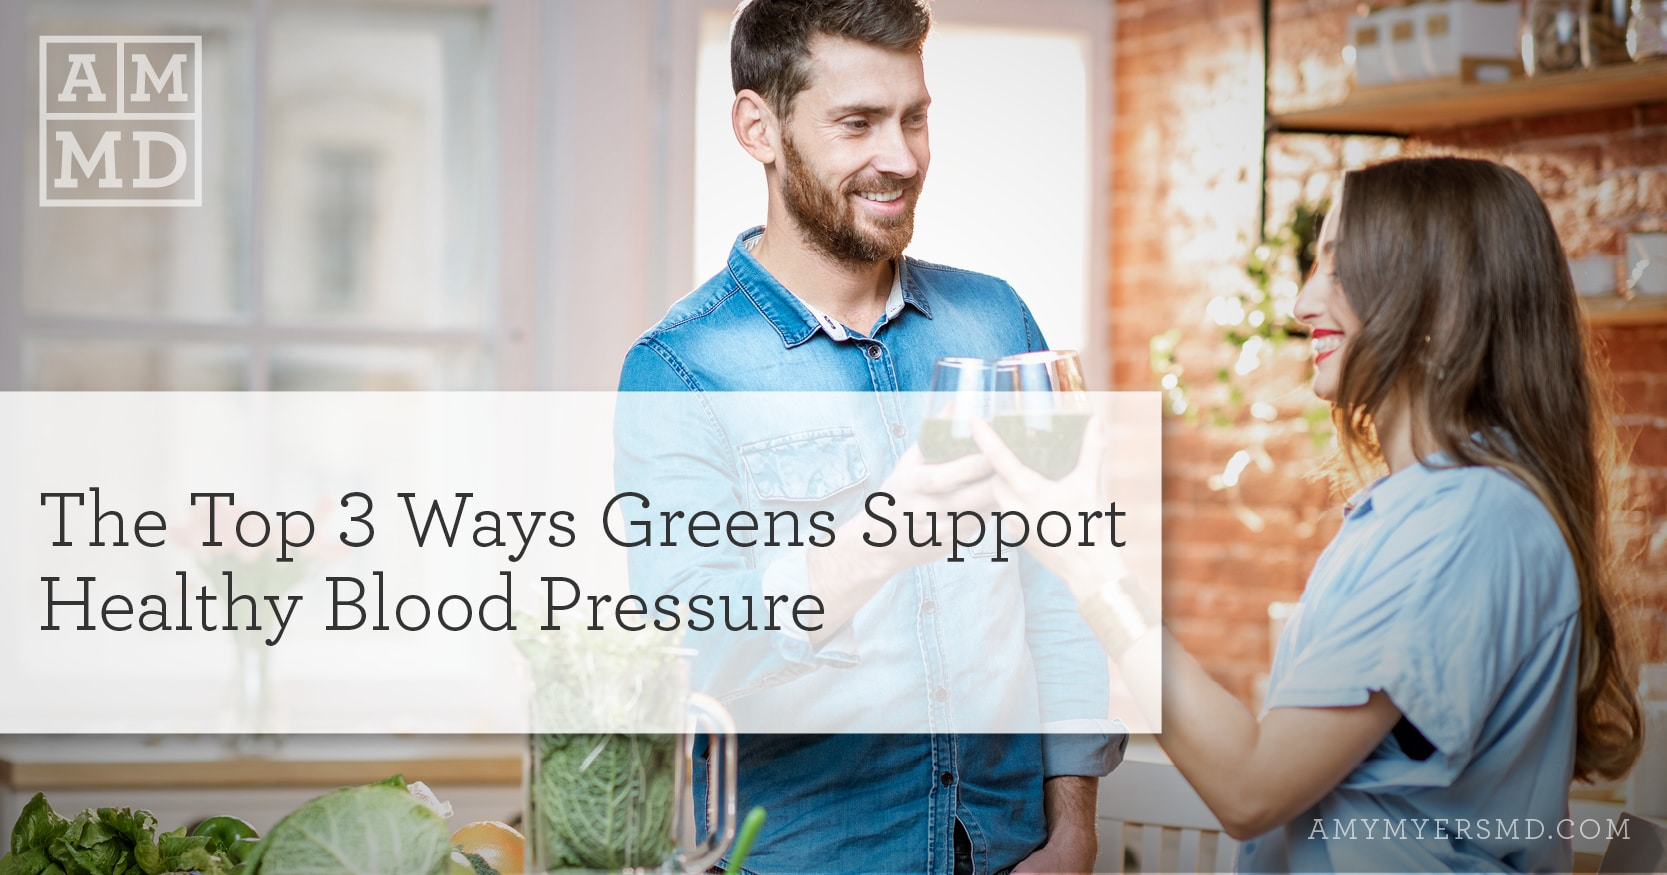 The Top 3 Ways Greens Support Healthy Blood Pressure - A Couple Enjoying a Drink Together - Featured Image - Amy Myers MD